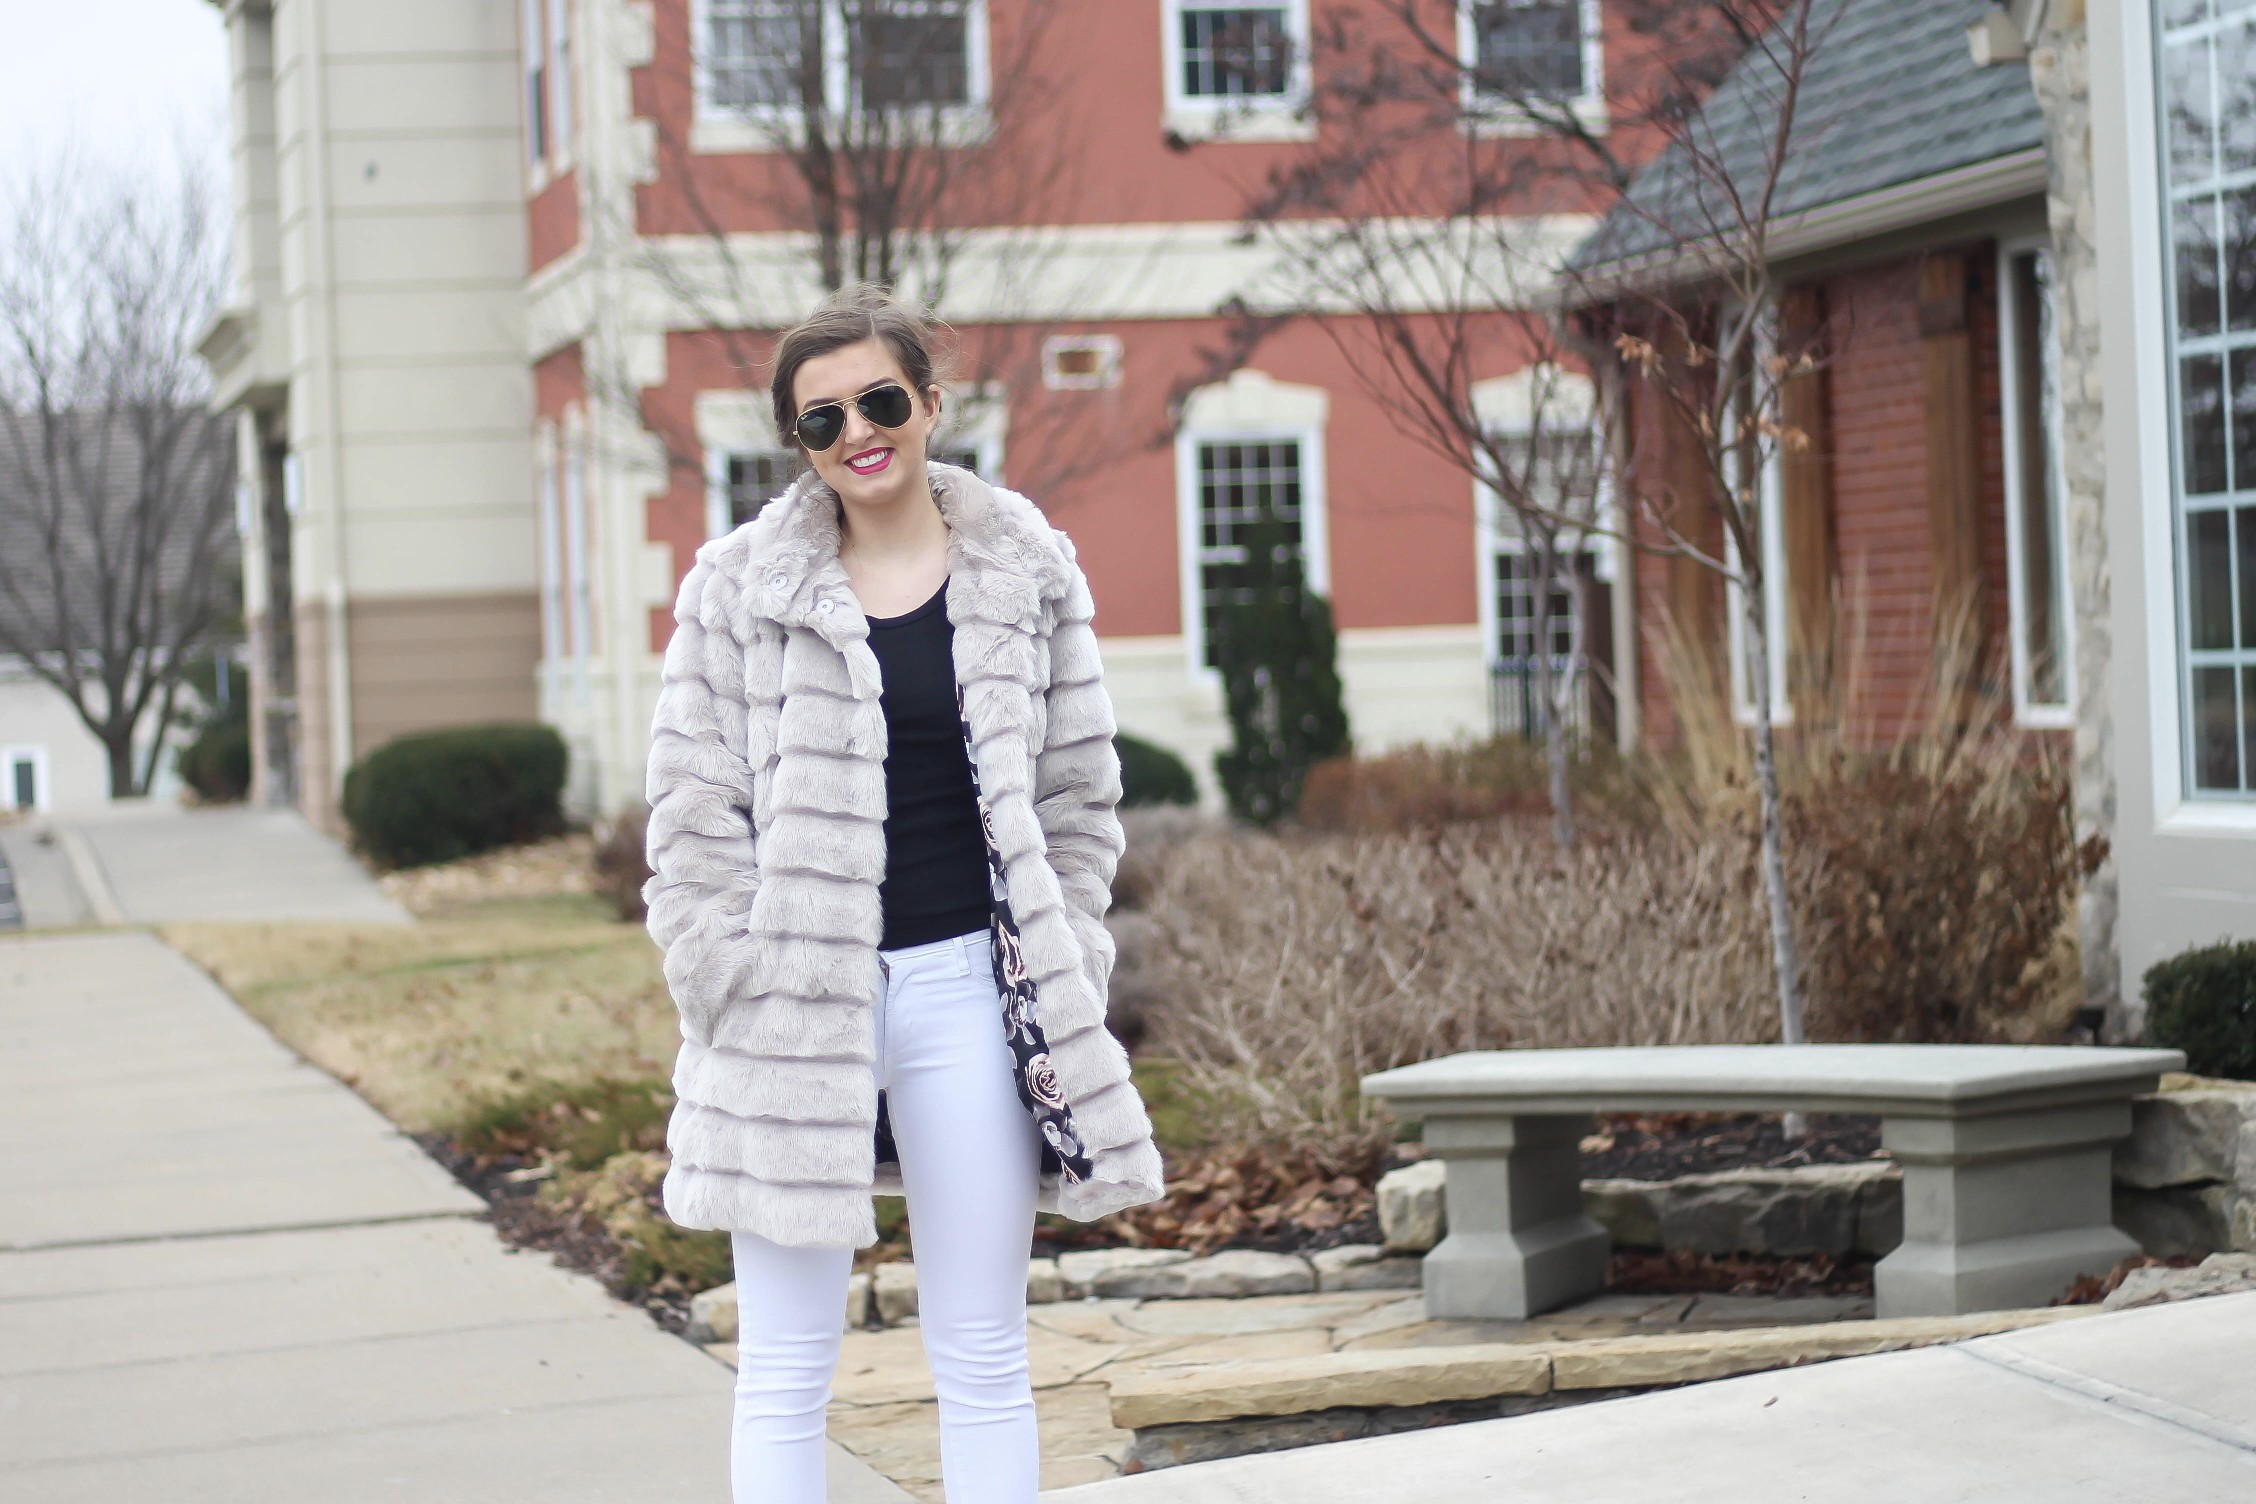 Fur coats are a closet necessity! This faux fur coat is my favorite and look adorable with white pants, cute heels, and bright pink lips! By Lauren Lindmark on dailydoseofcharm.com daily dose of charm